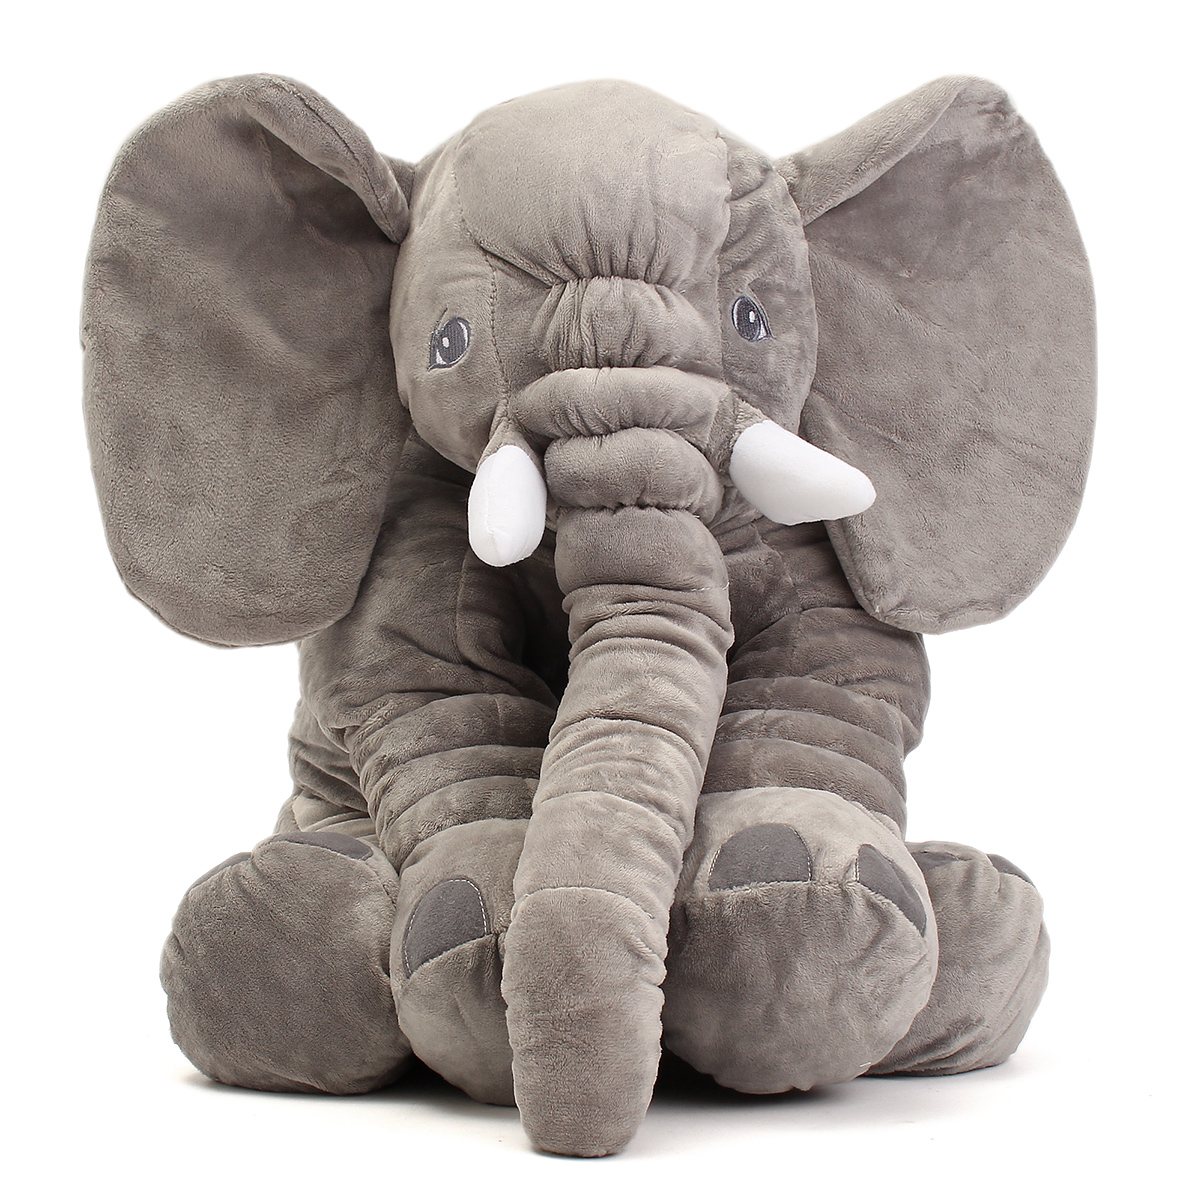 Toys For Elephant : Cm cute jumbo elephant plush doll stuffed animal